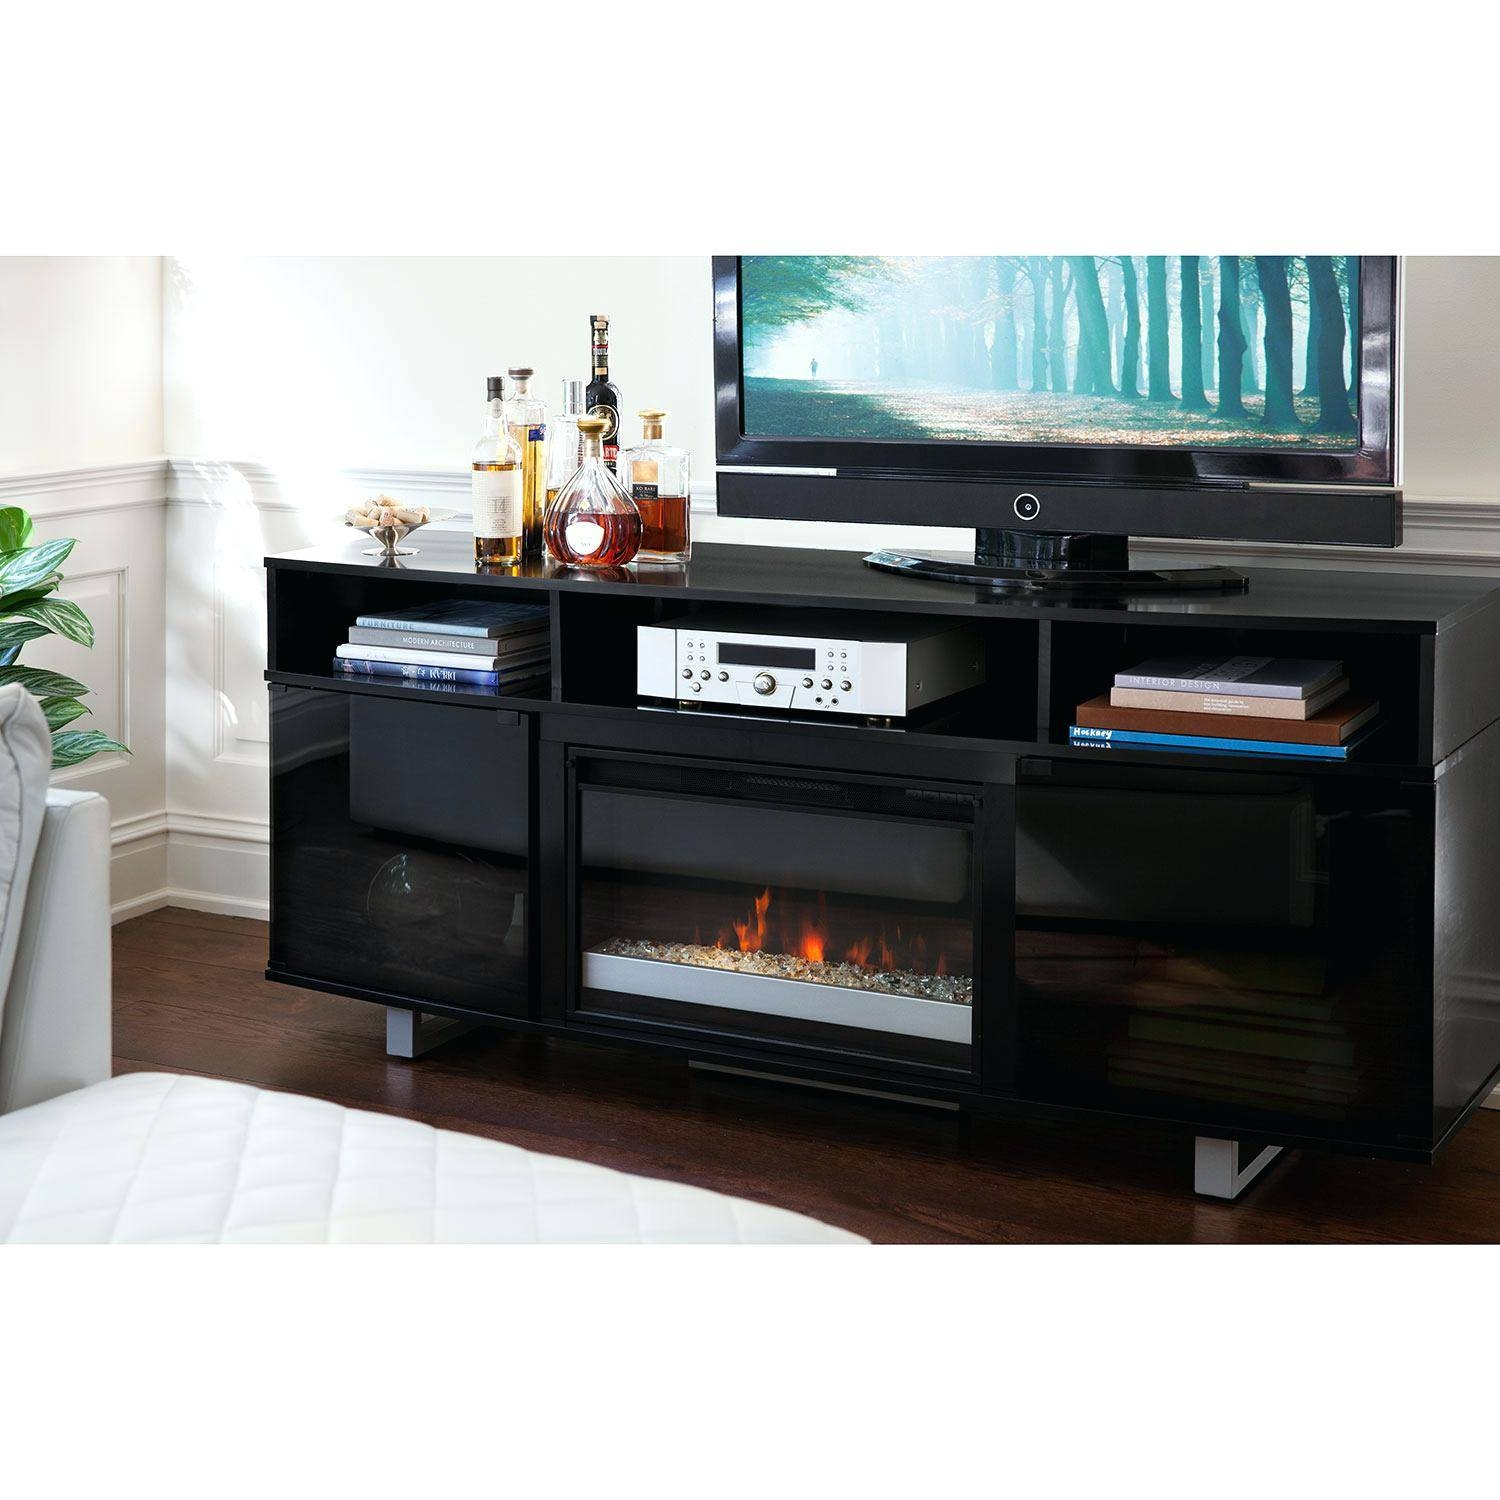 Tv Stand : Tv Stand Furniture Compact Jm Tv027 Modern Tv Stand In in Shiny Black Tv Stands (Image 15 of 15)